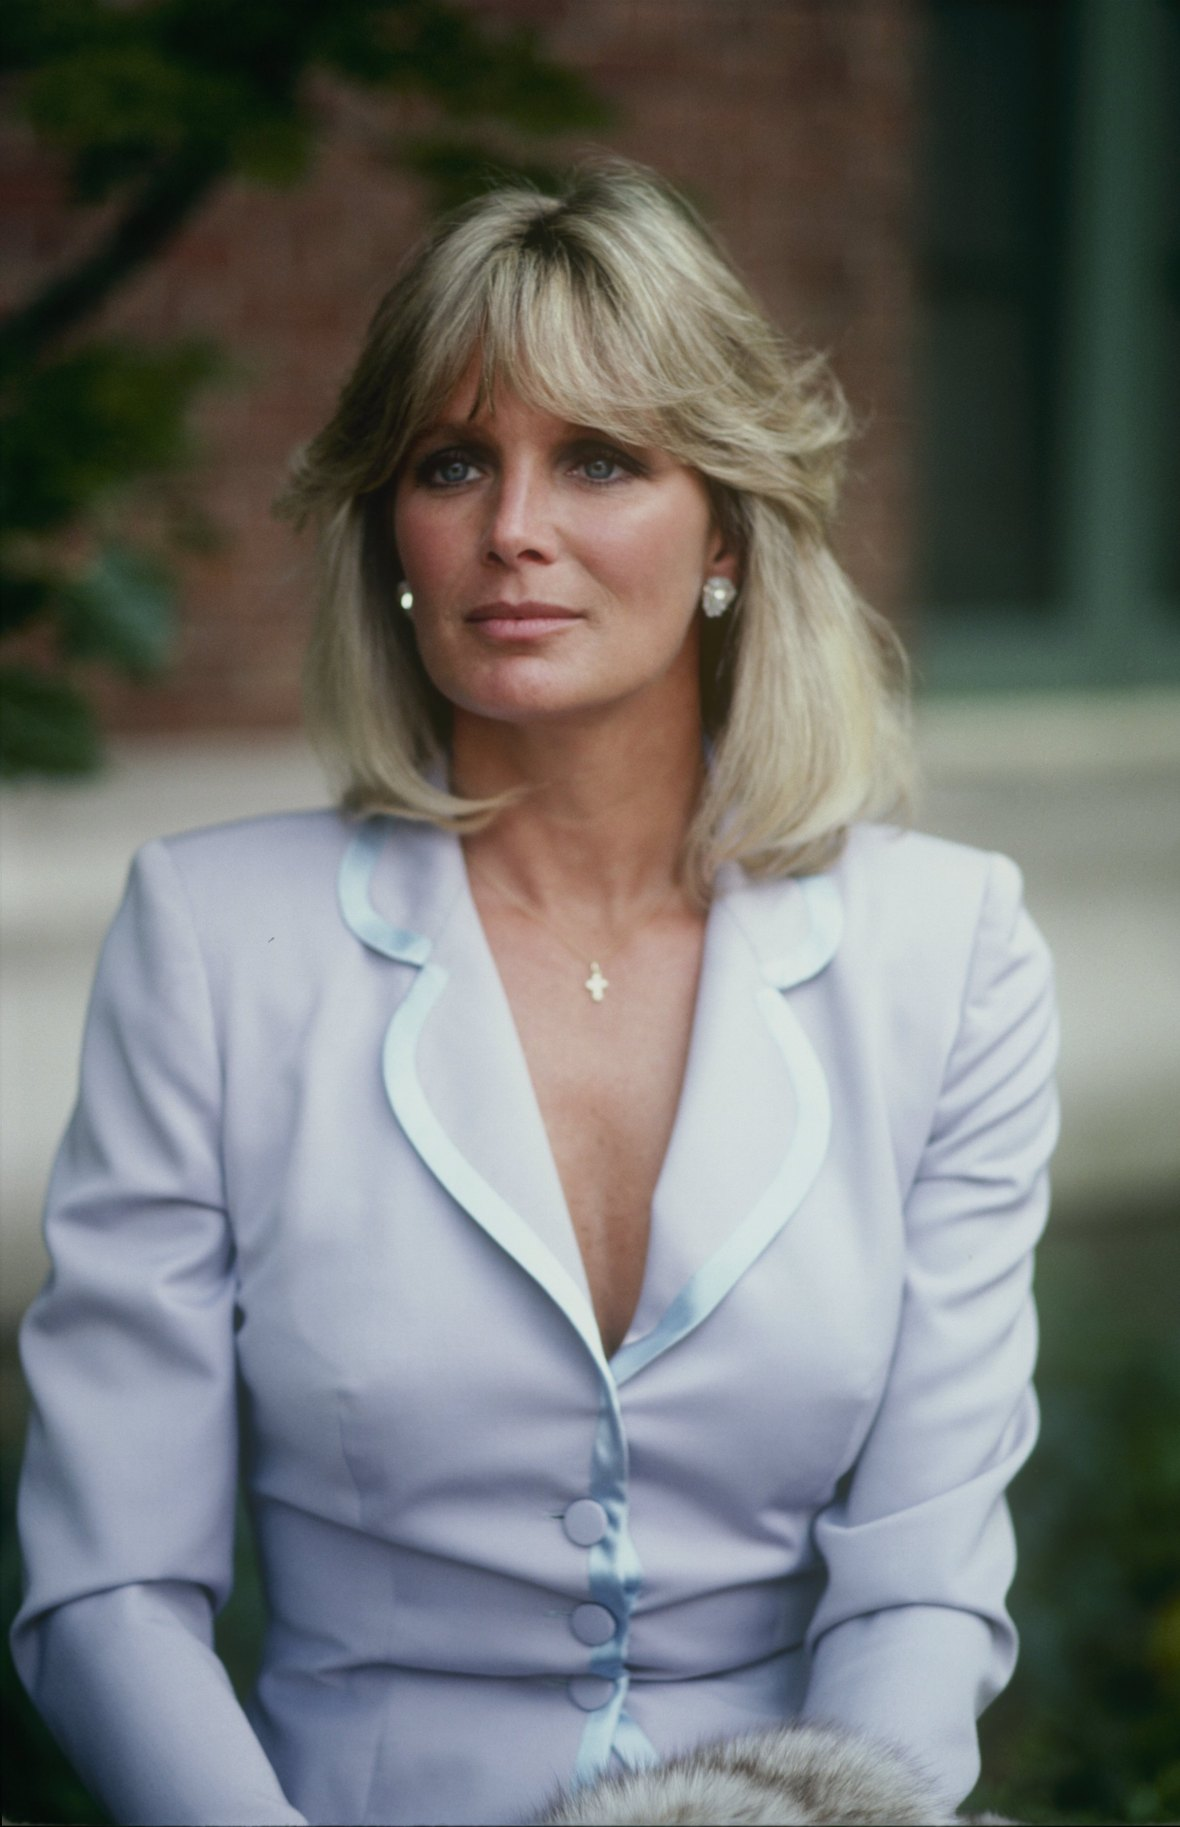 linda evans getty